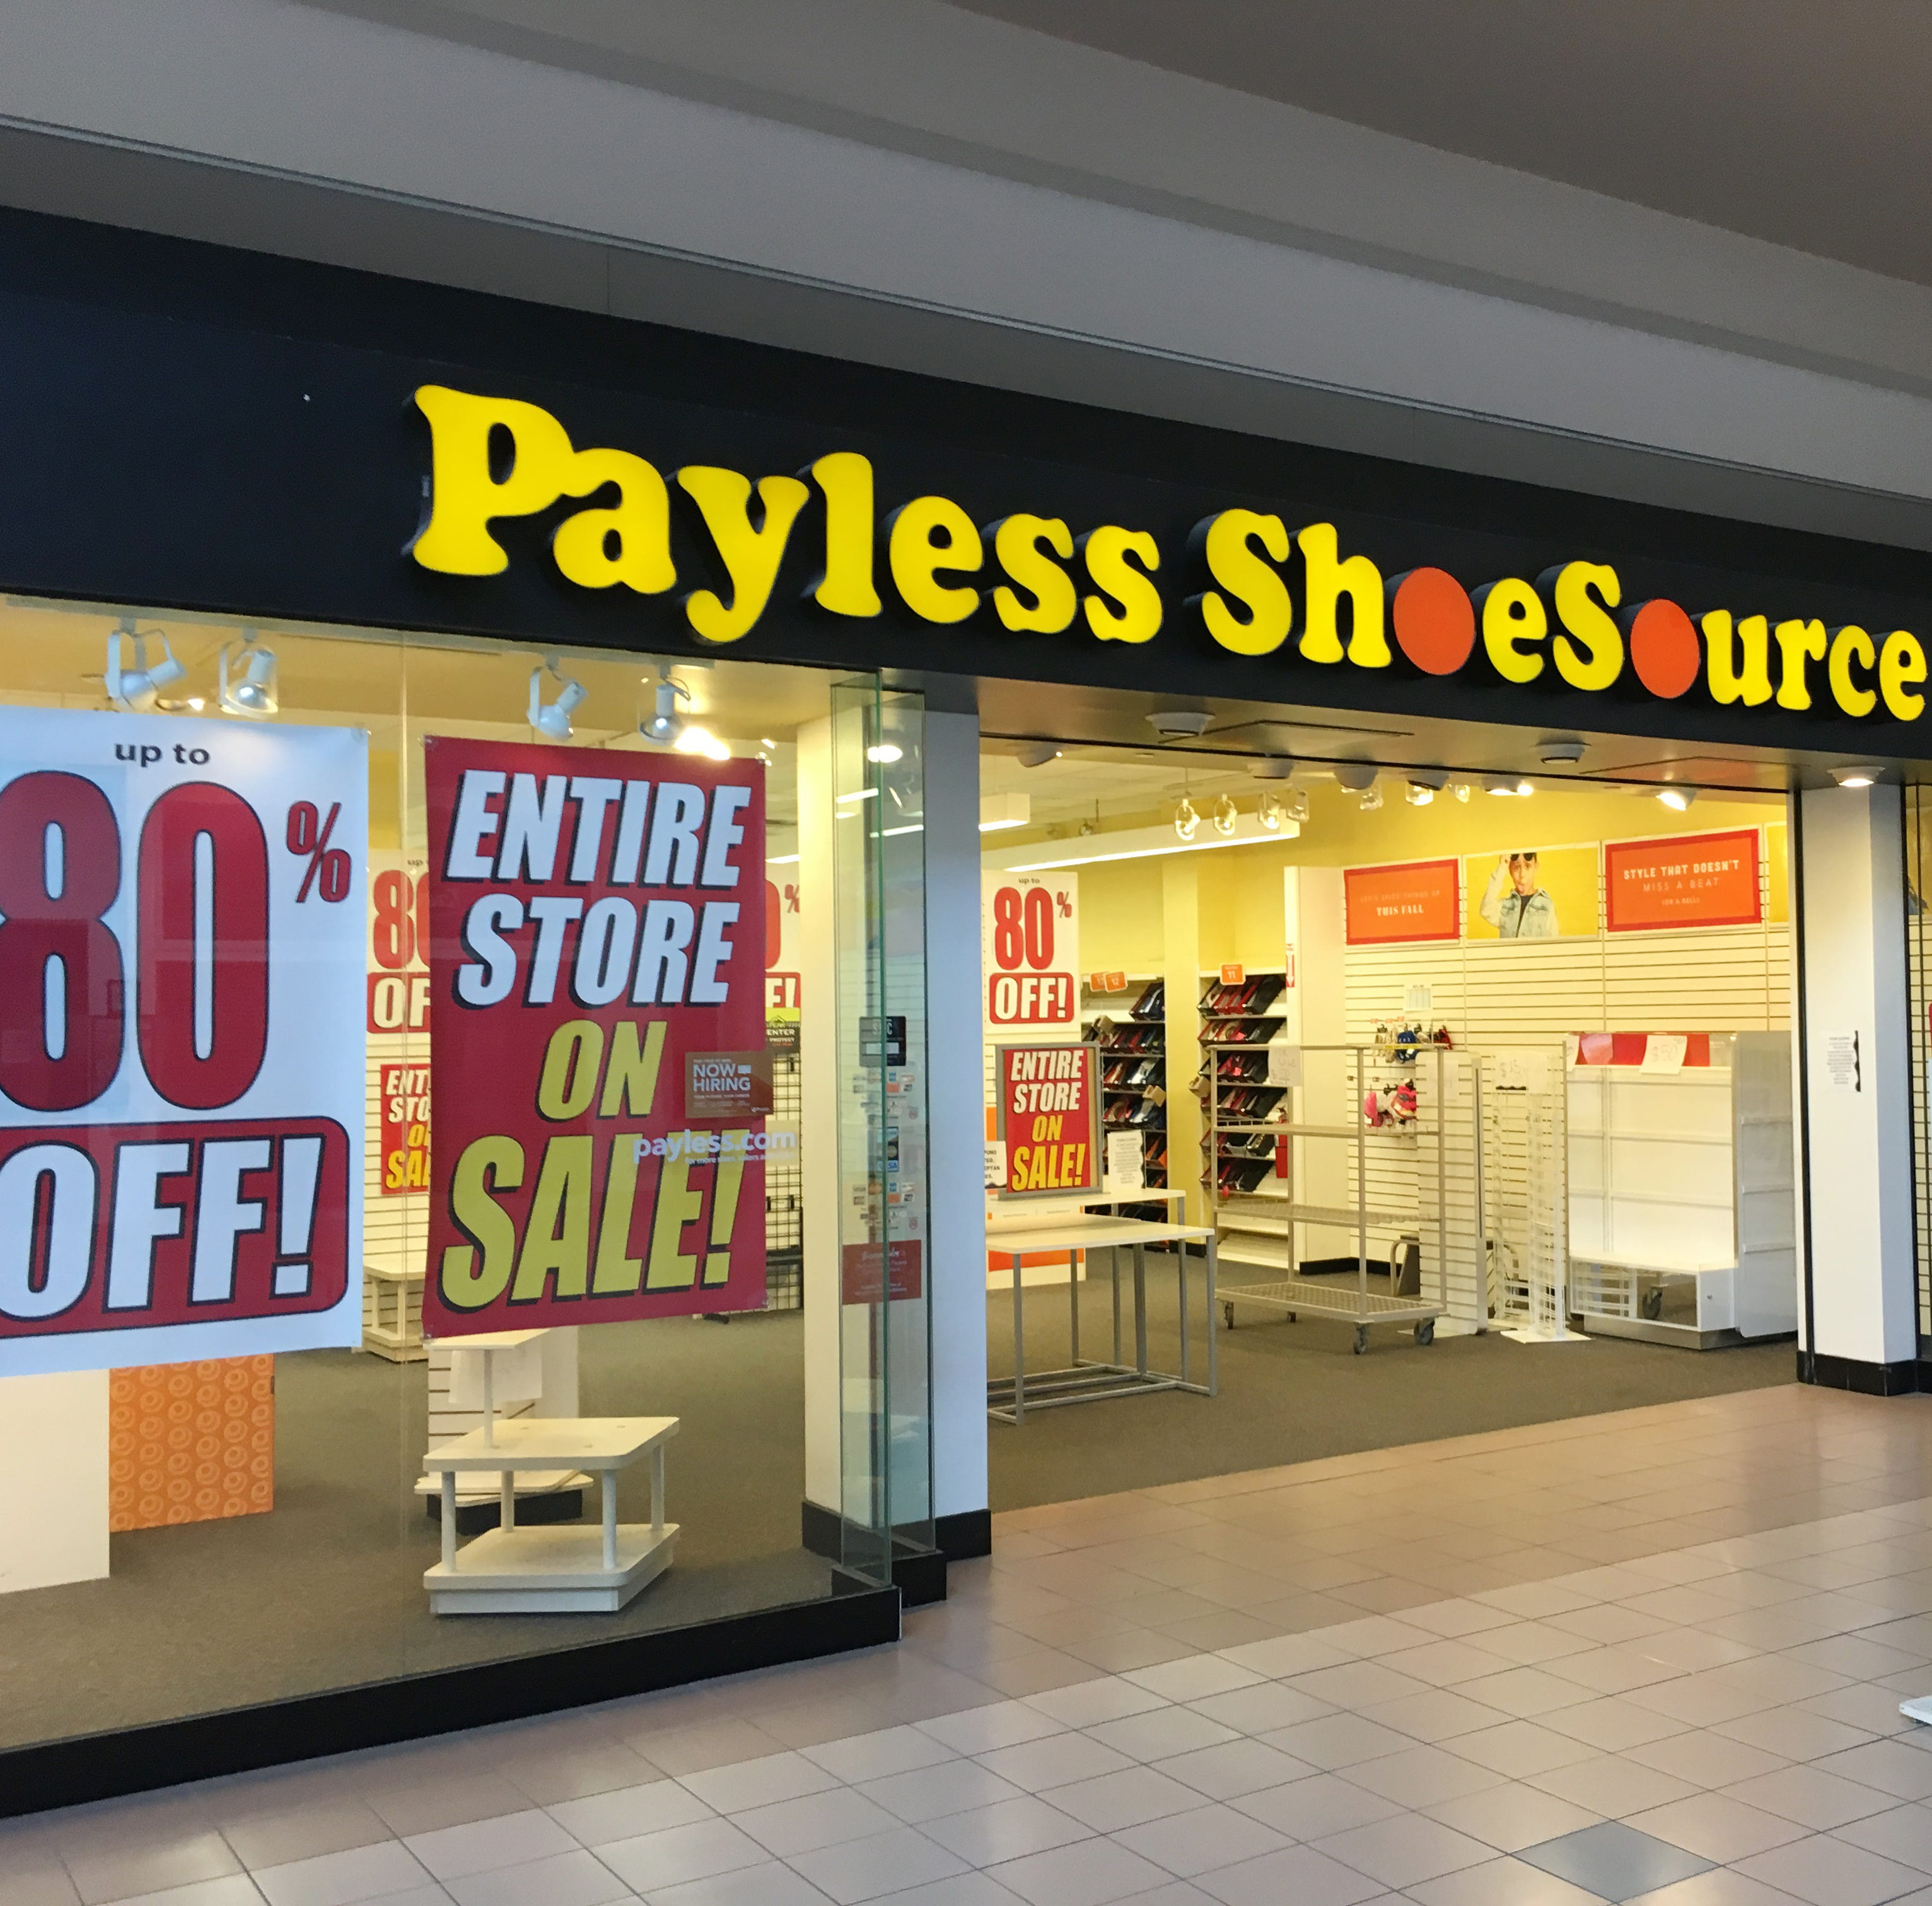 Payless ShoeSource closing all 2,100 U.S. stores, starting liquidation sales Sunday